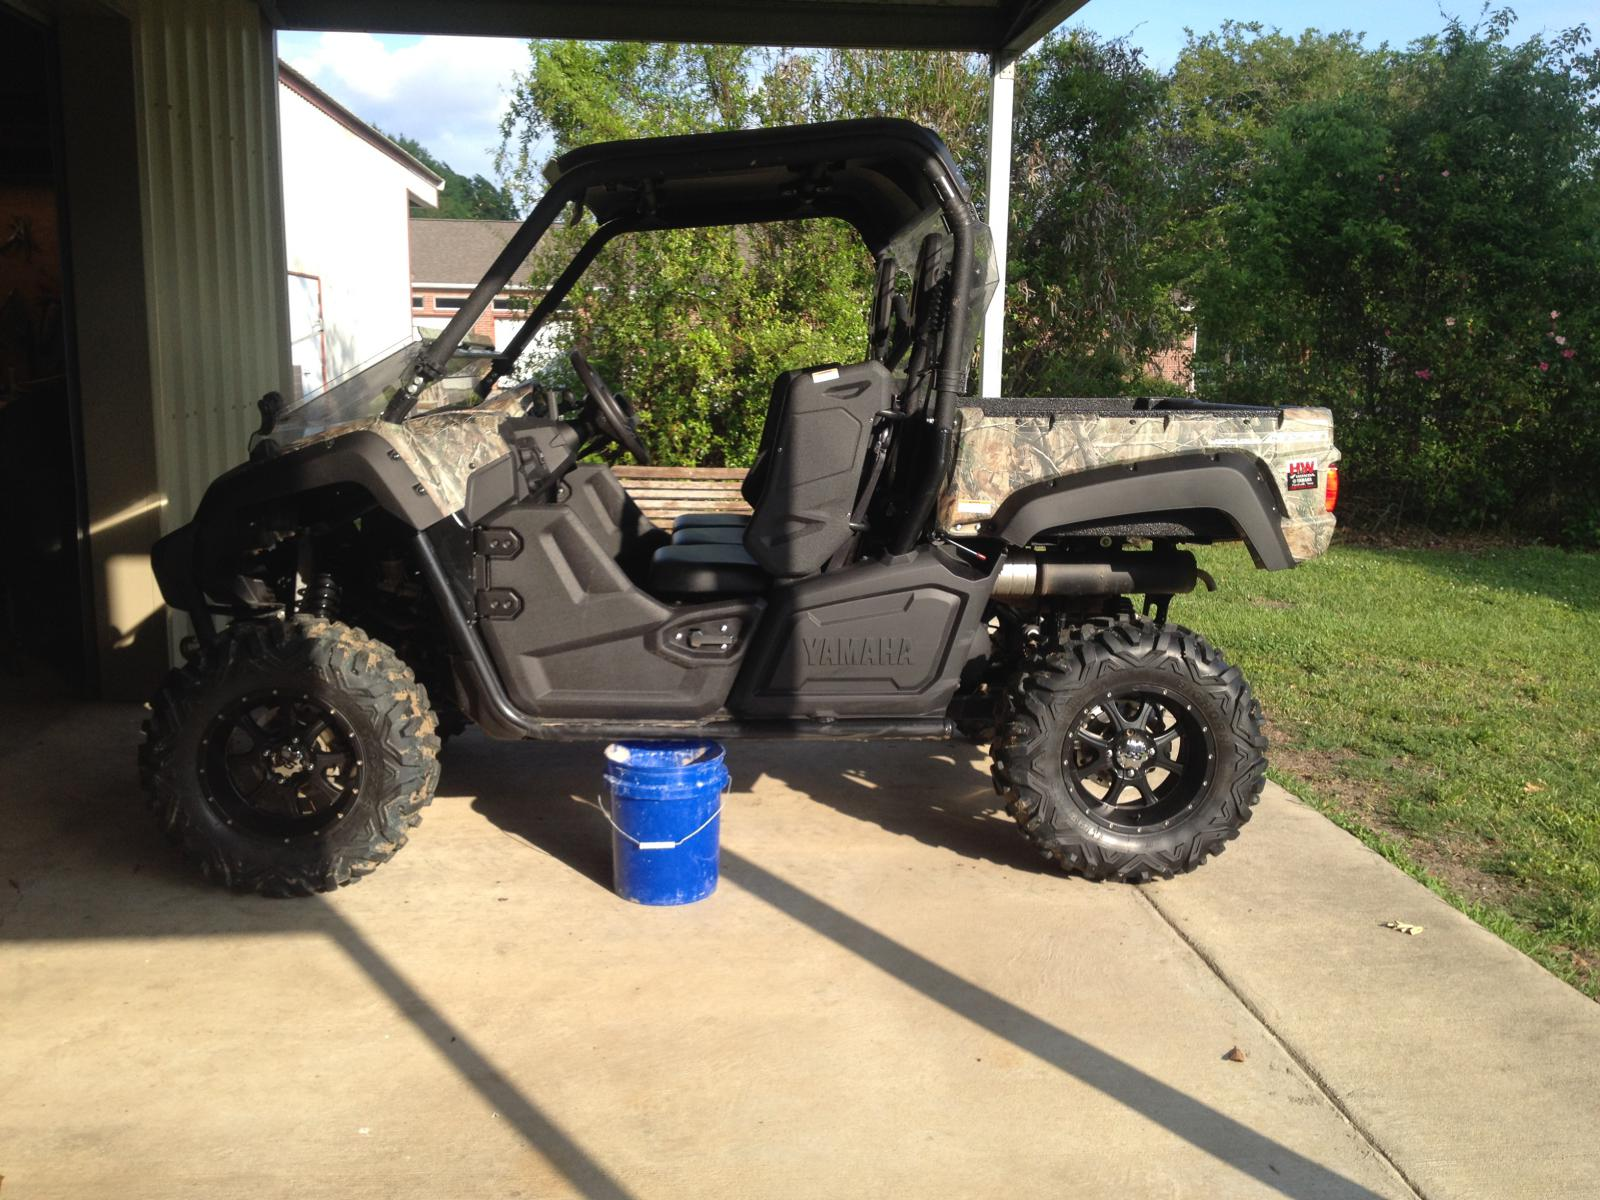 Yamaha Wolverine For Sale >> Looking for lift kit info? (pros and cons) - Page 5 - Yamaha Viking Forum